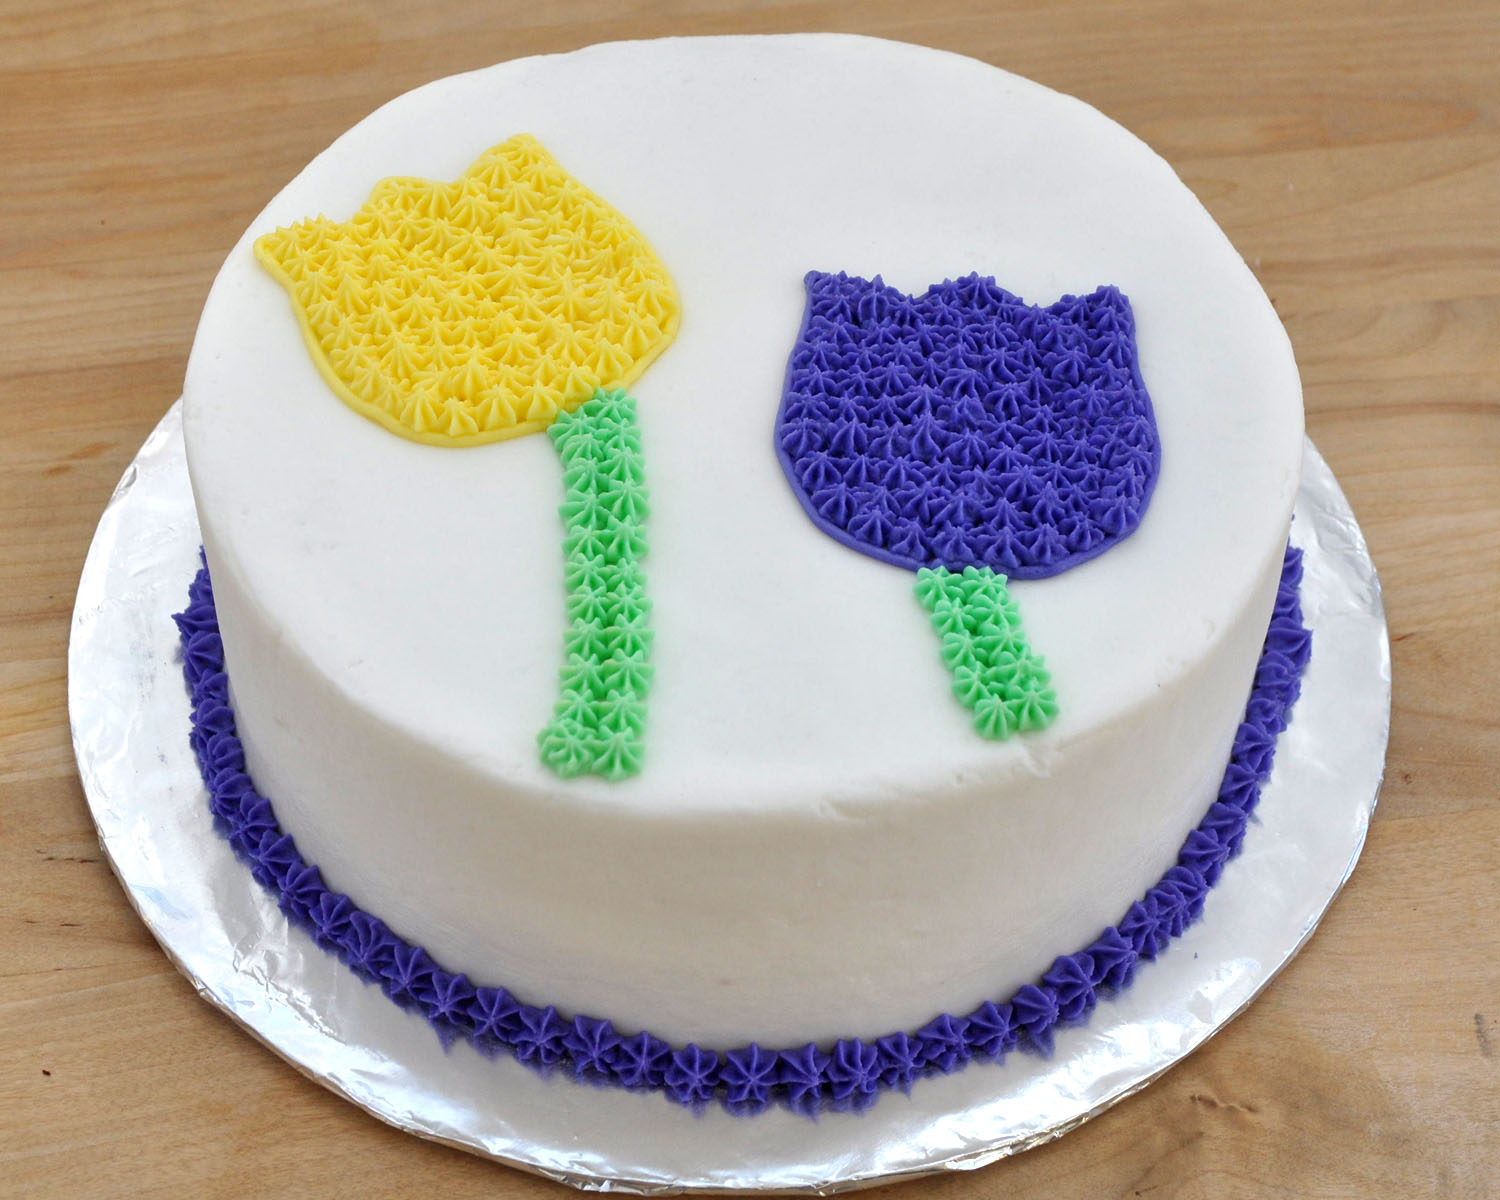 Cake Design And Decoration : Beki Cook s Cake Blog: Cake Decorating 101 - Easy Birthday ...